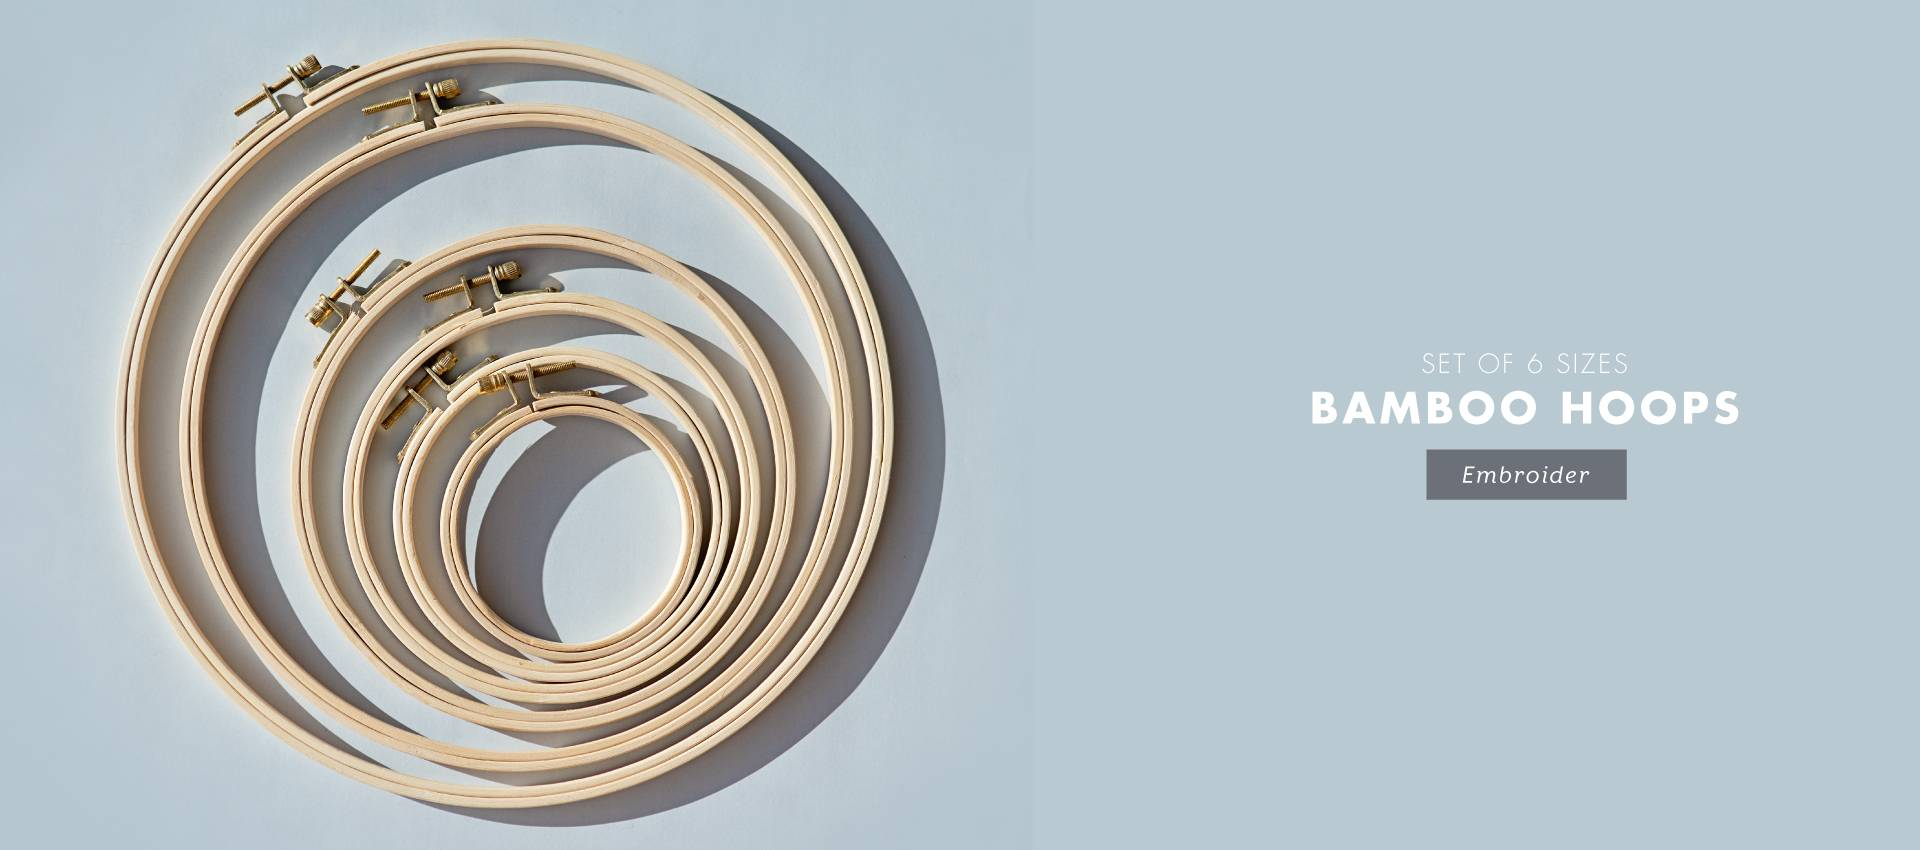 EMBROIDERY BAMBOO HOOPS: excellent value for money for a modern embroidery essential, cross stitch and punch needle